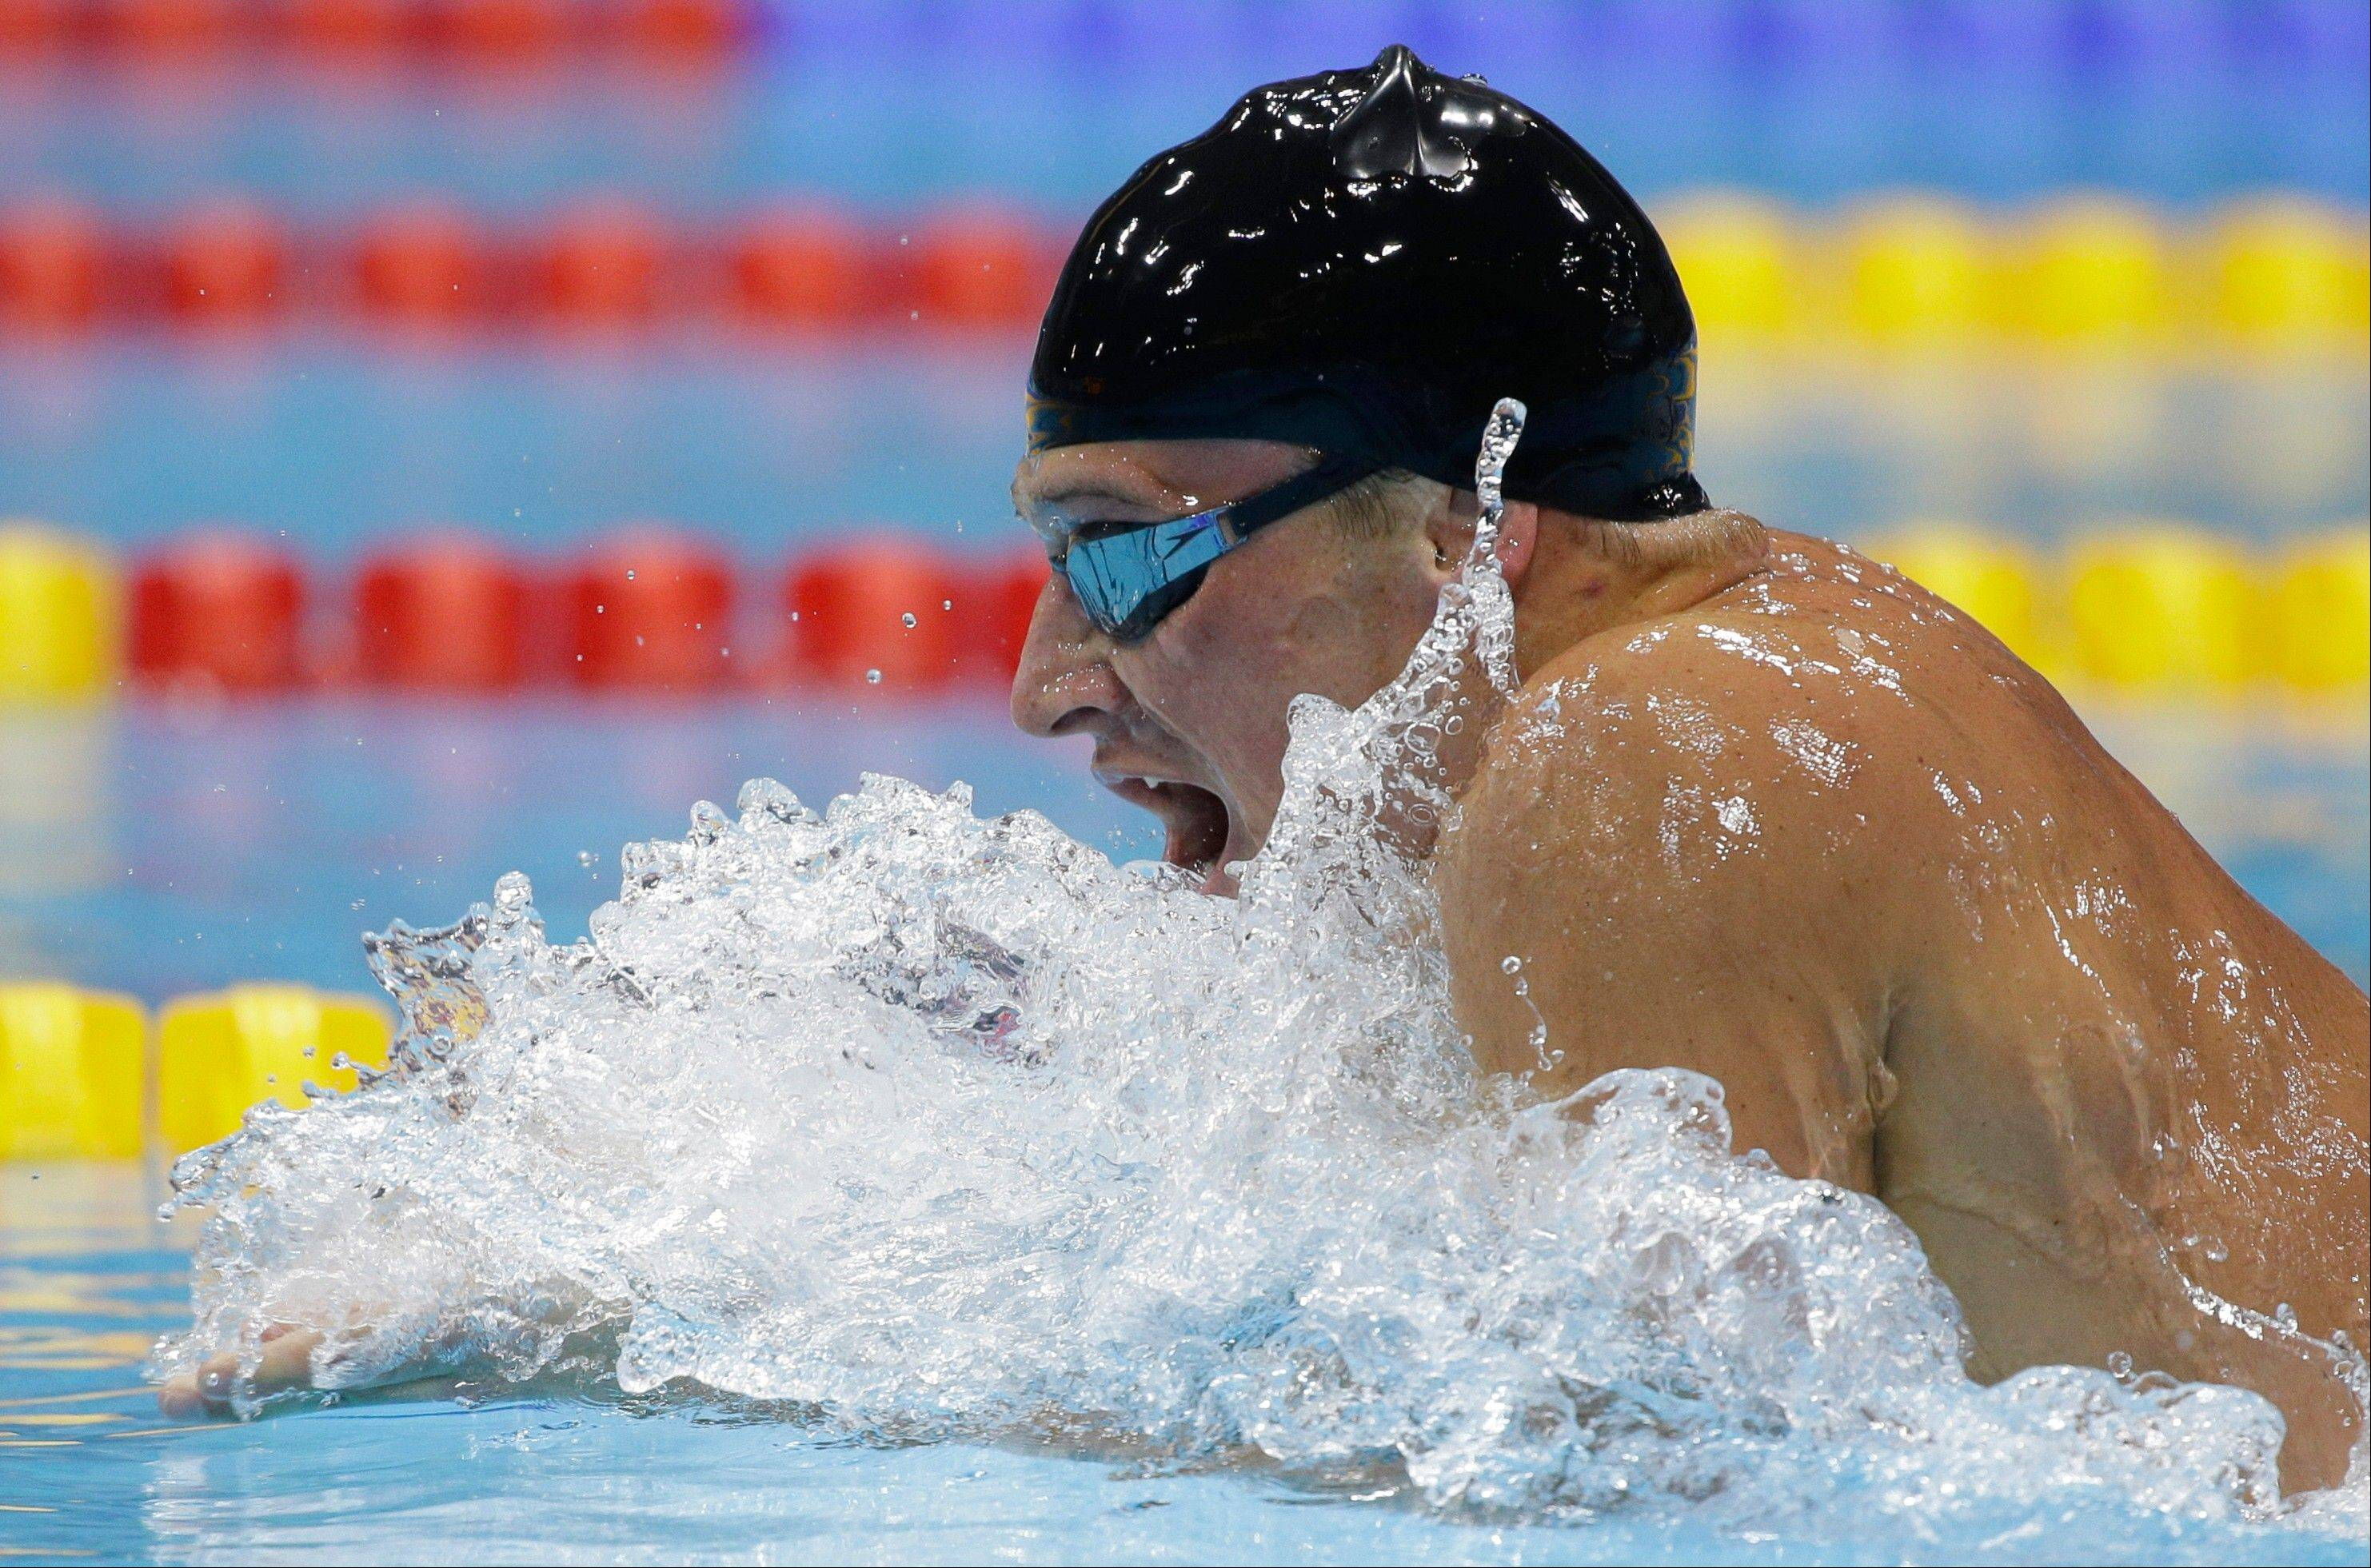 Olympic Images from Saturday July 28, 2012